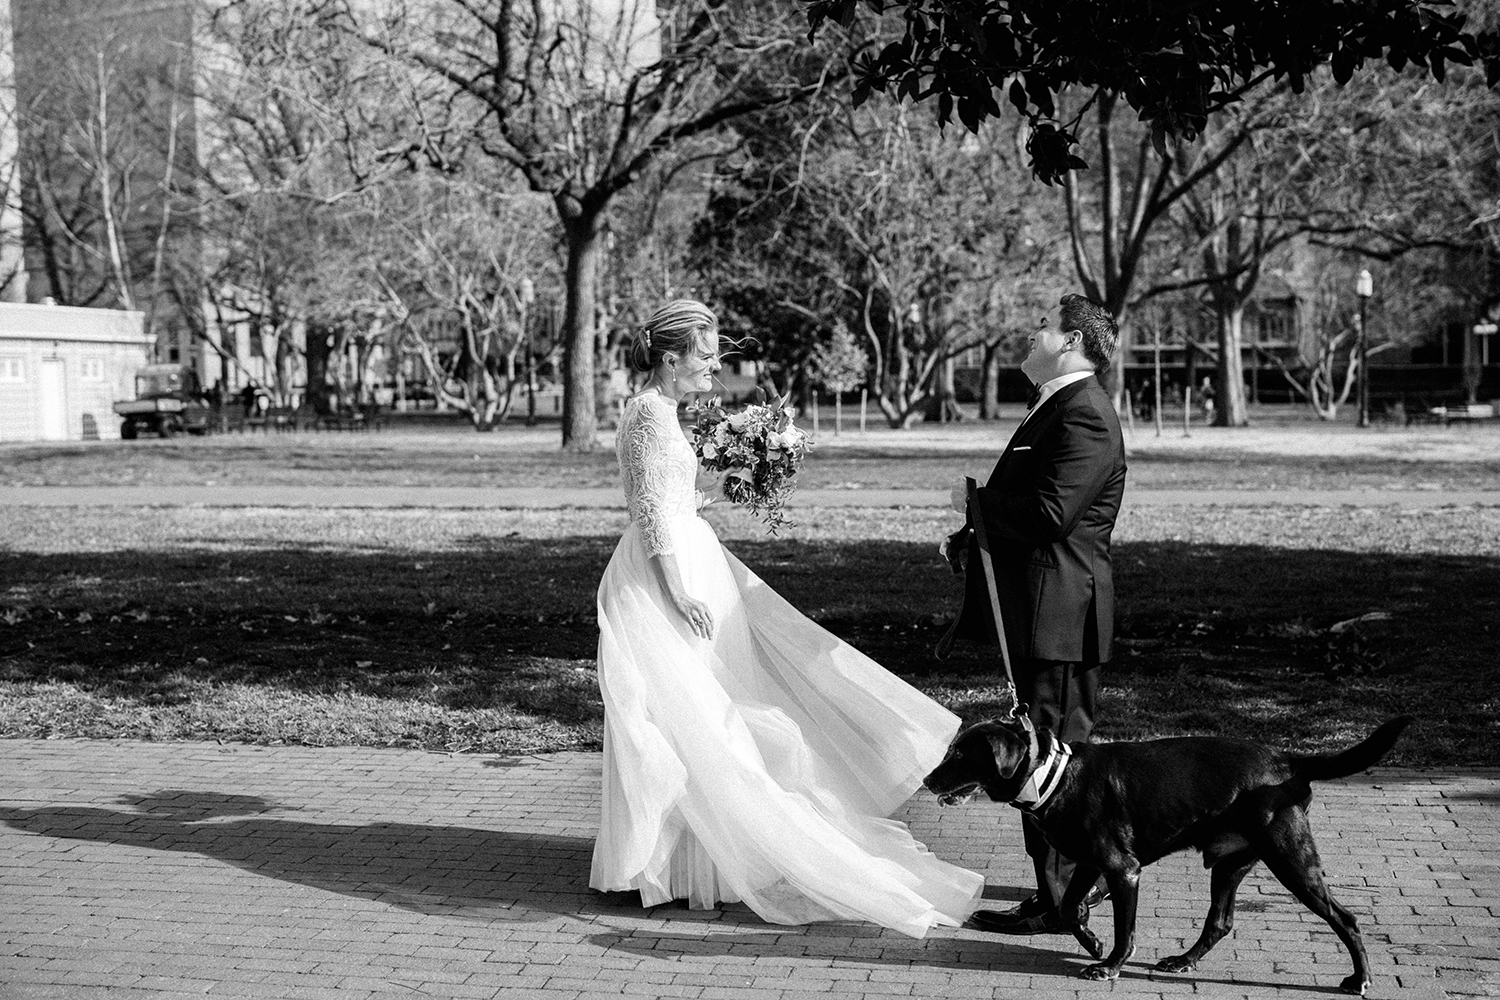 First look on this winter wedding in the city